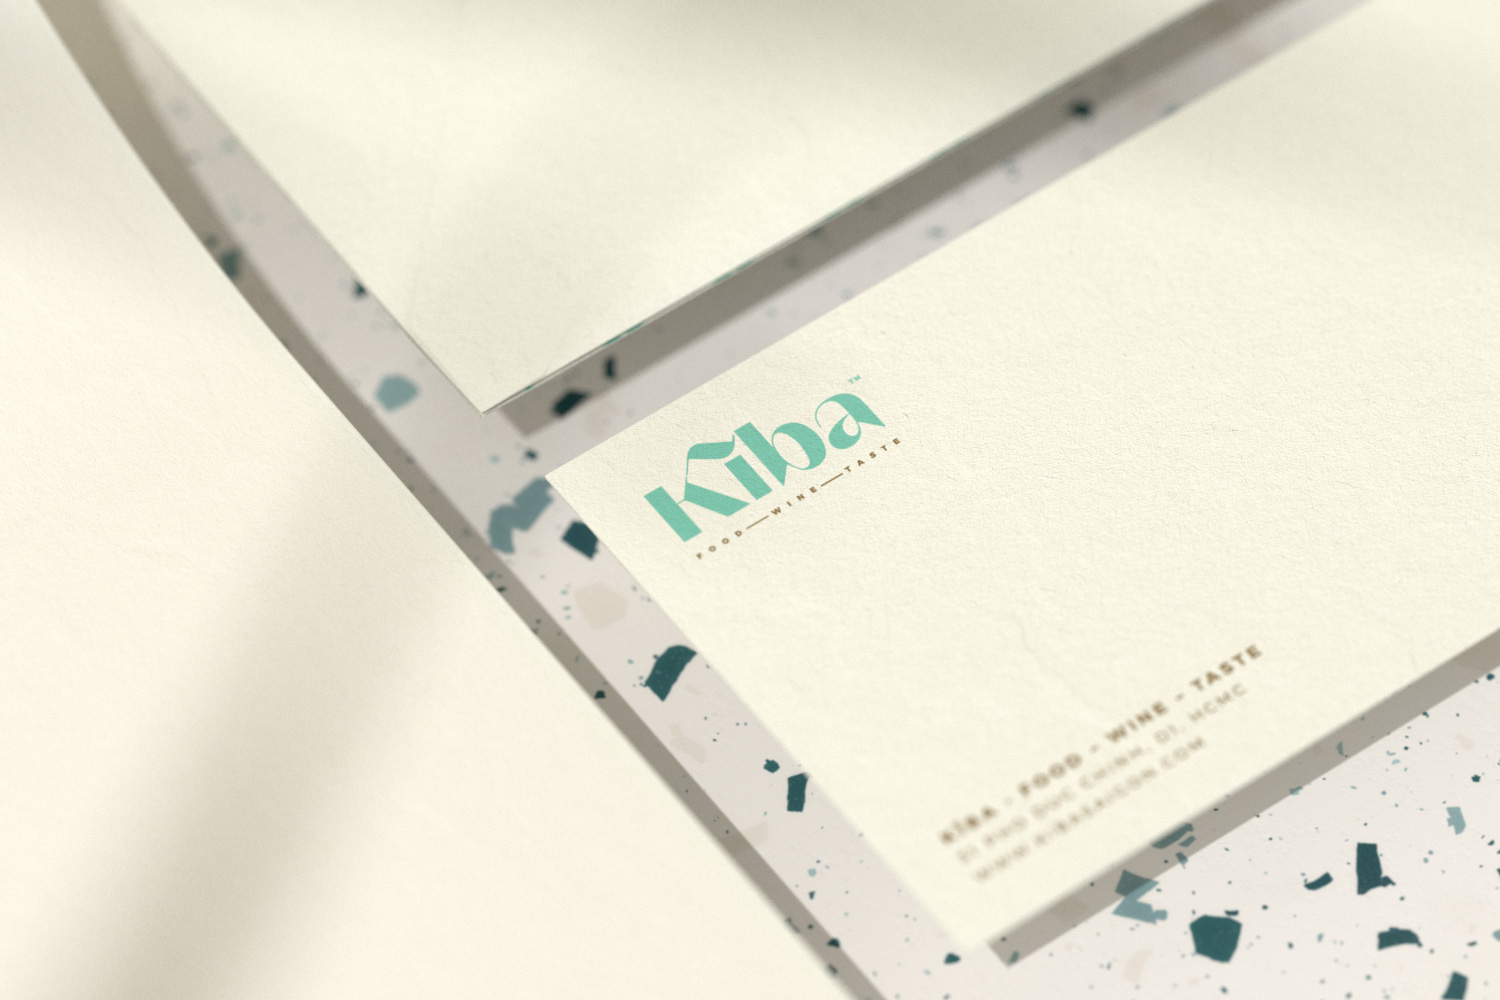 Kiba Saigon letterhead and Dl envelope in closeup view